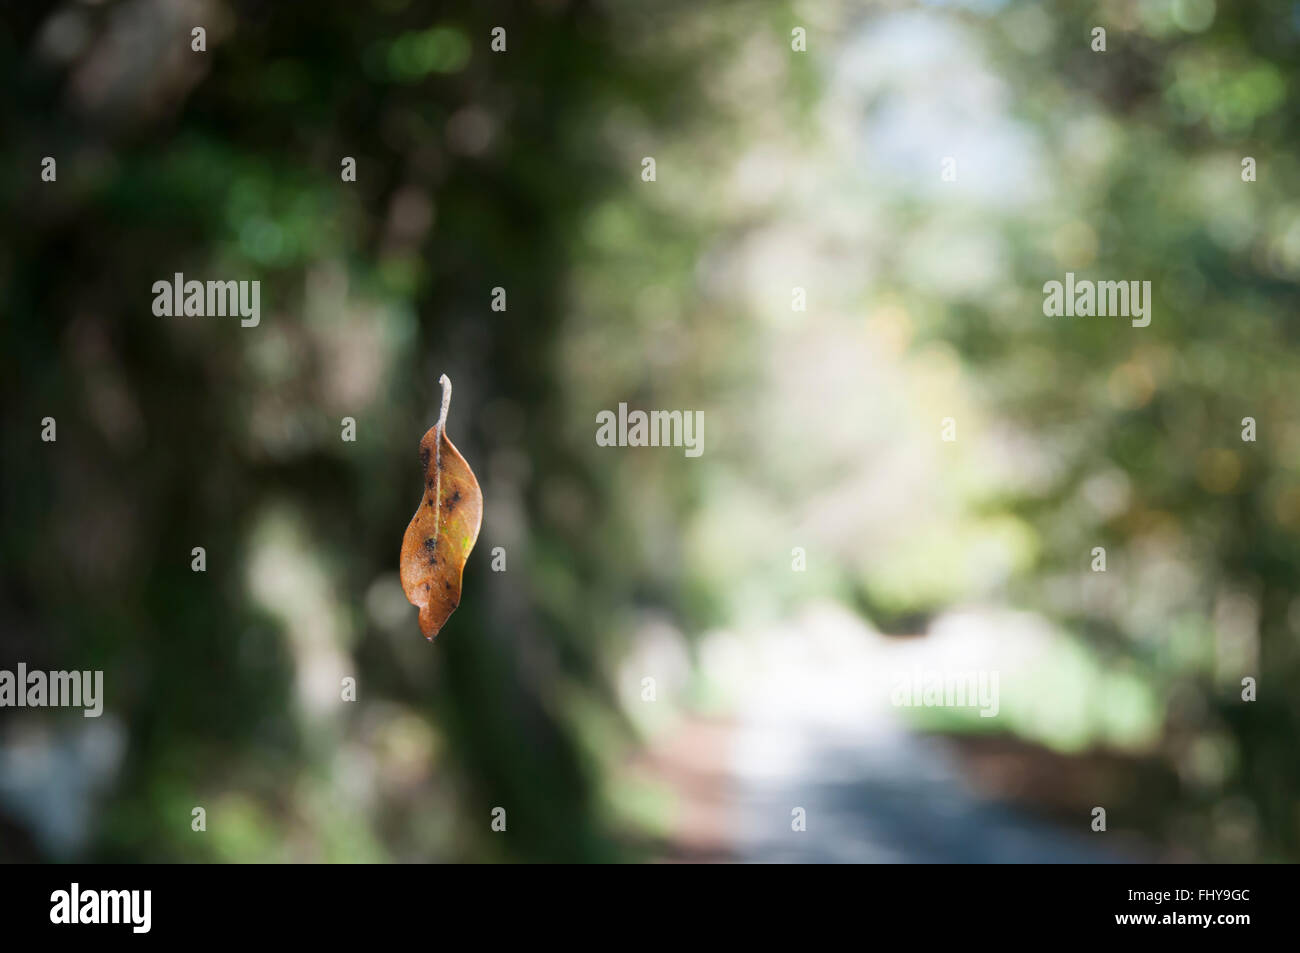 leaf falling in the forest with blurred background - Stock Image